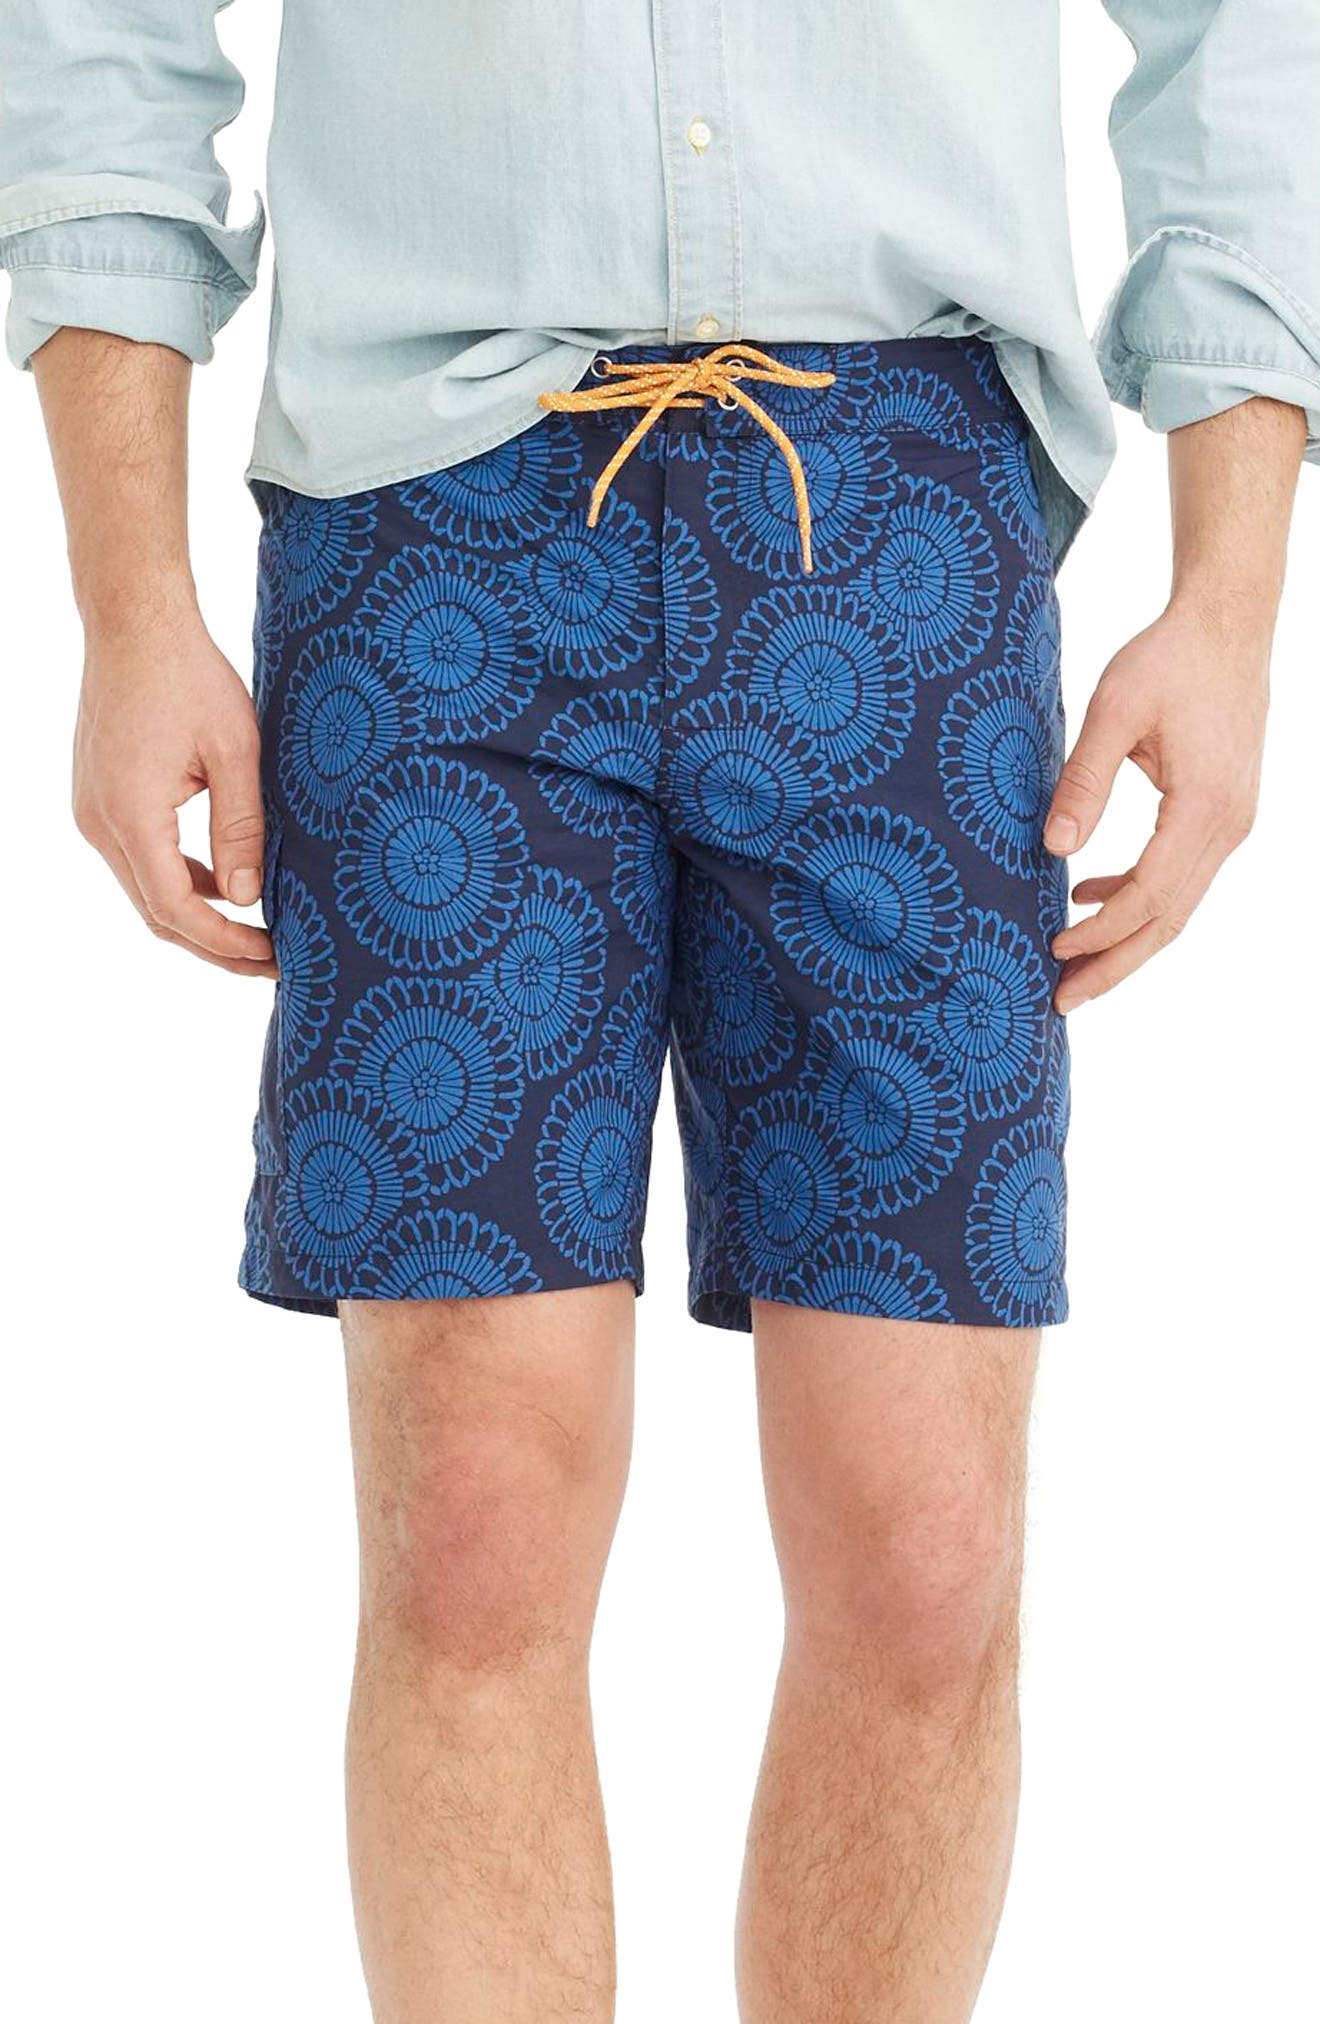 Floral Print Board Shorts,                             Main thumbnail 1, color,                             Indigo Blue